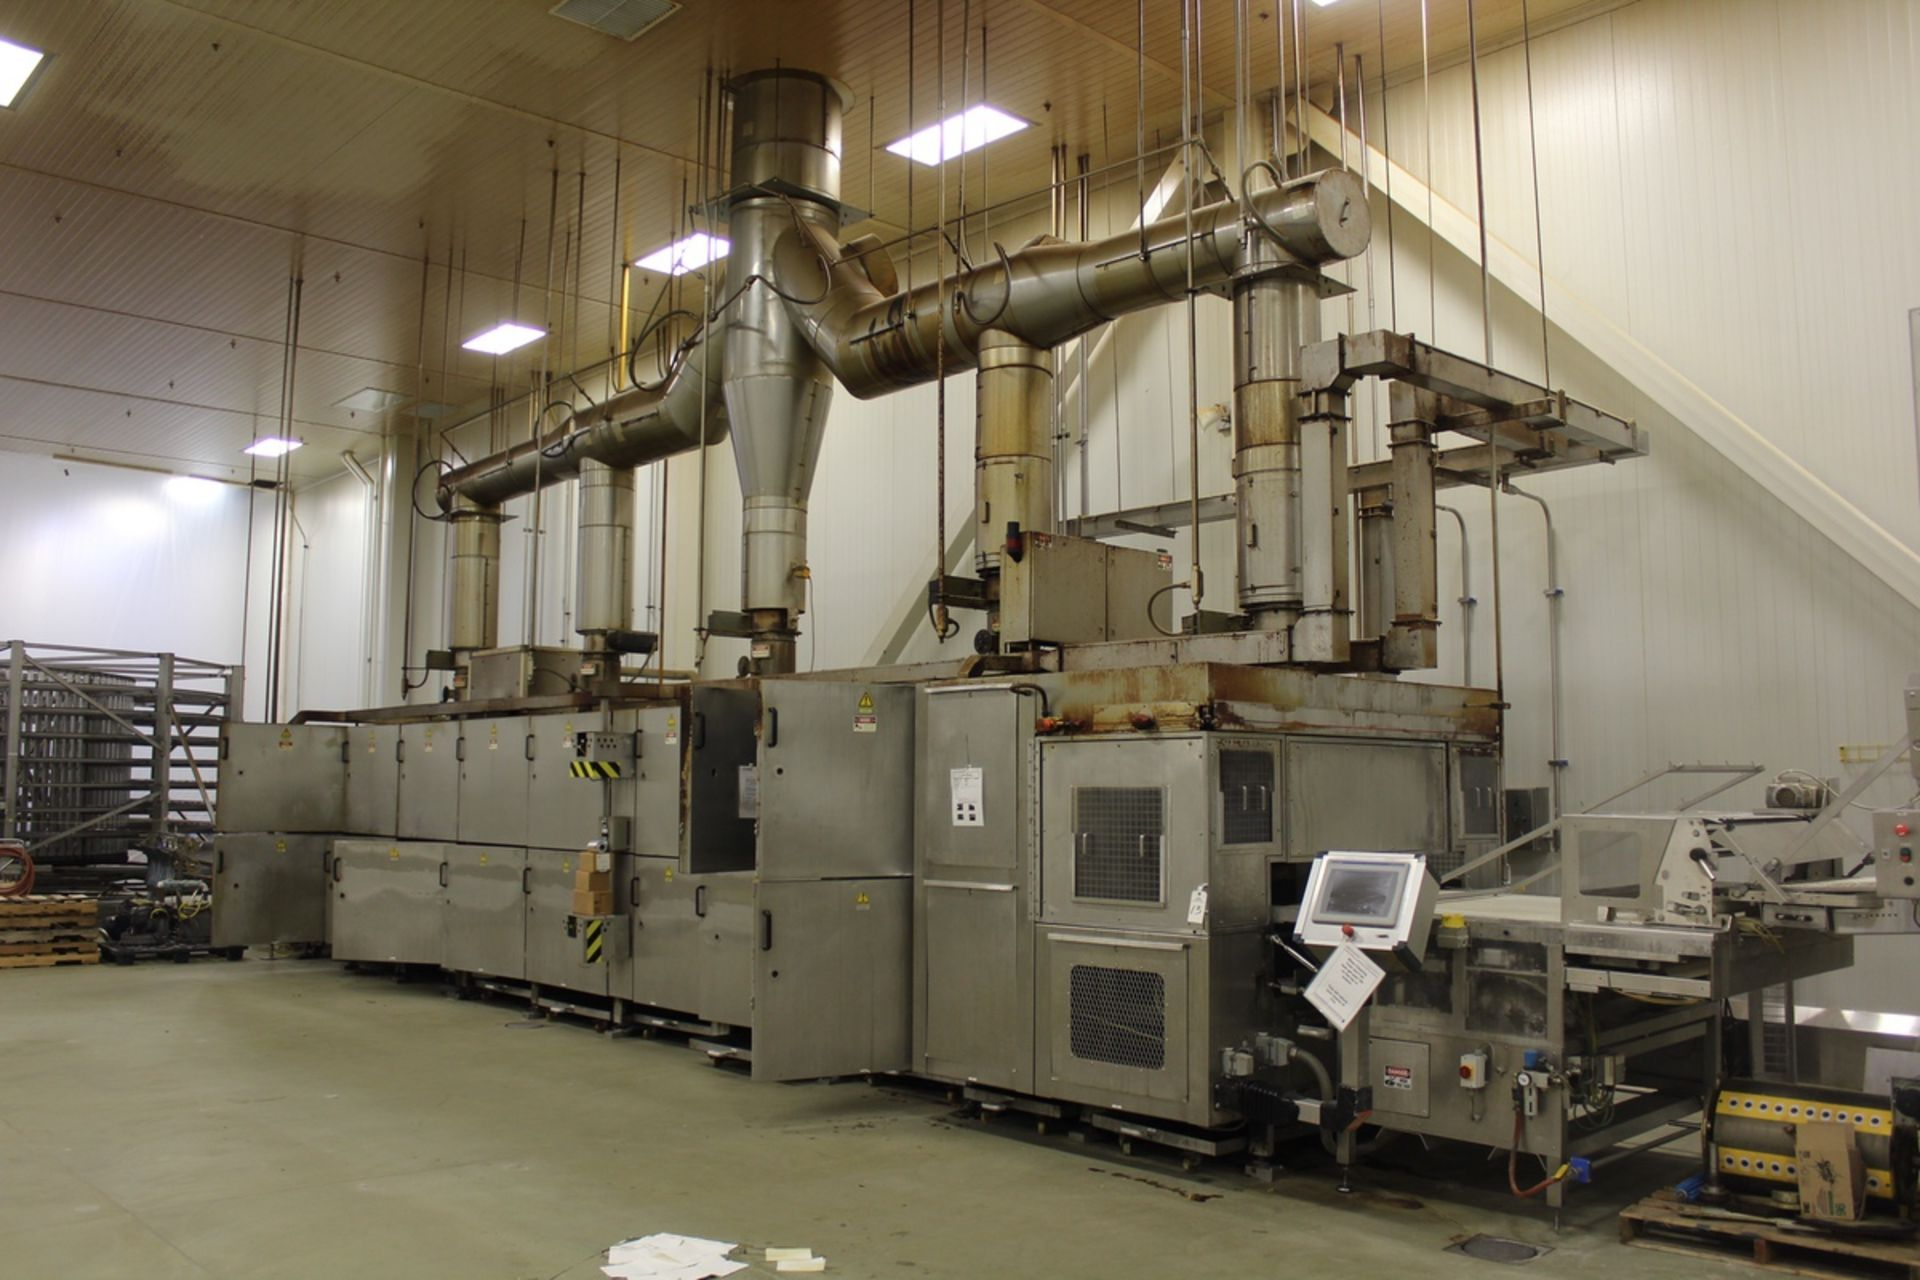 Lot 13 - 2009 Franz Haas Plate Type Continuous Waffle Griddle Type Oven, M# PZO 161-S, S/N | Rig Fee: $11200